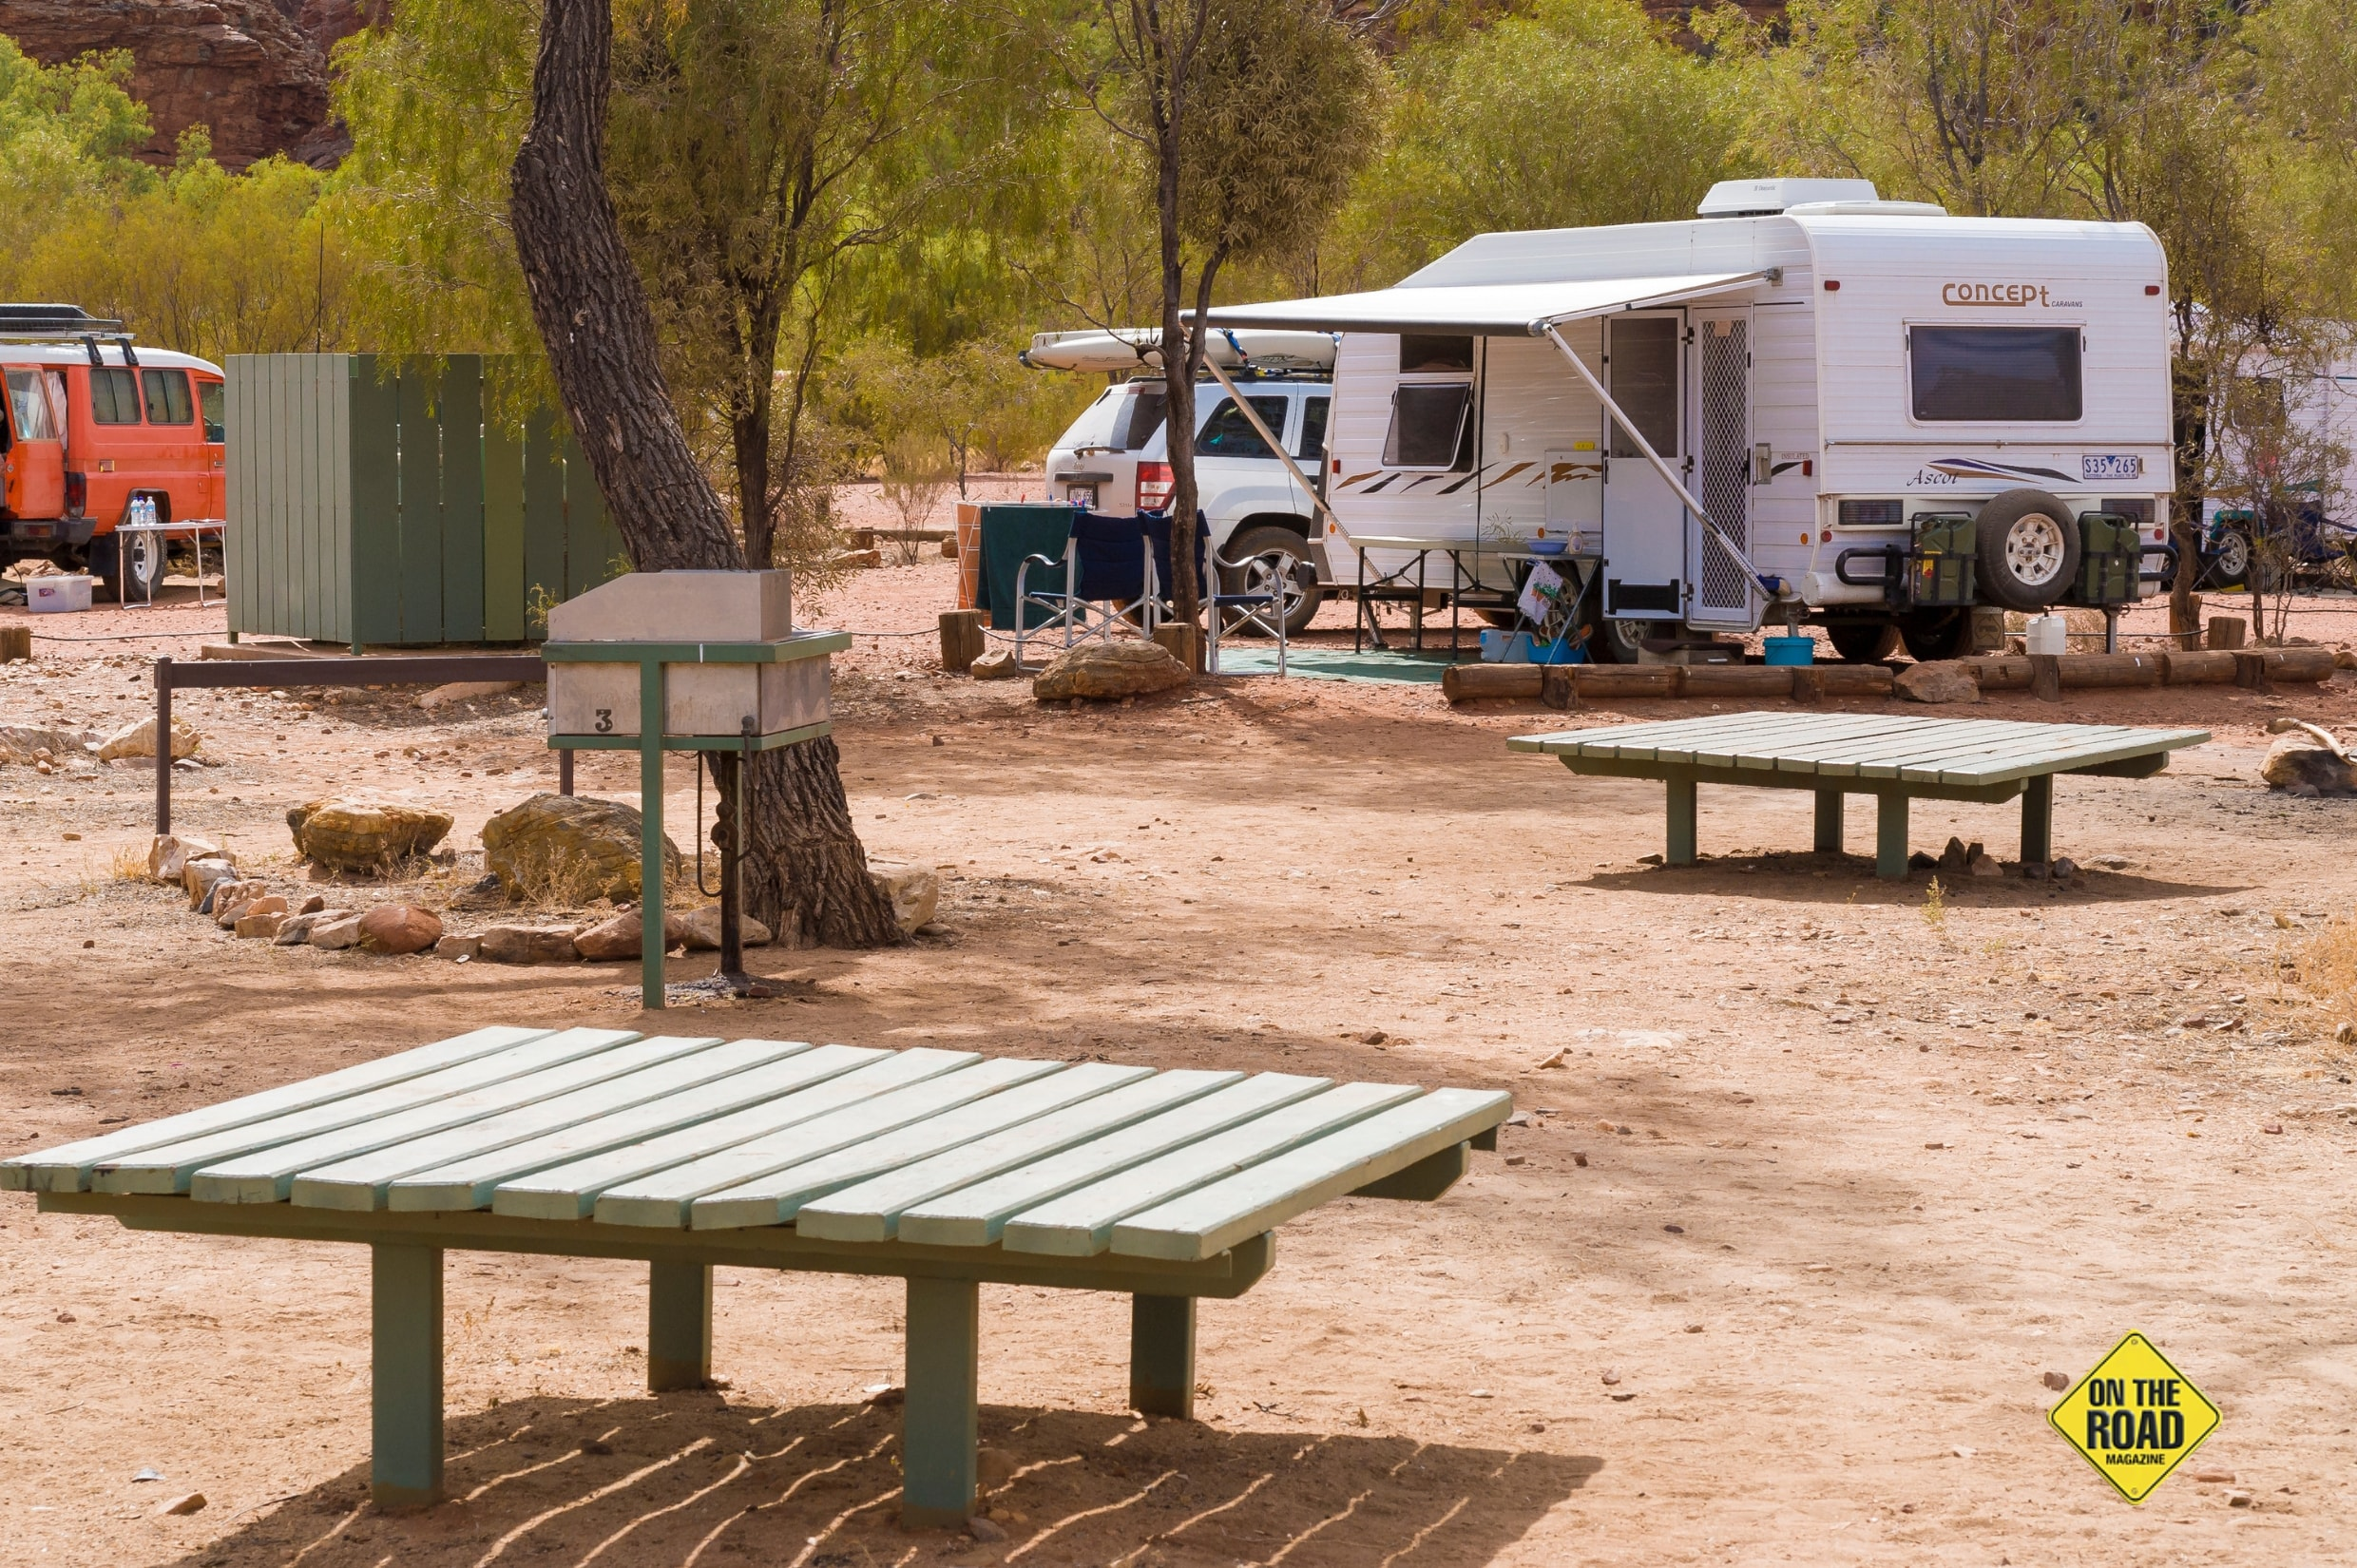 For affordable camping with hot showers and more head to Ormiston Gorge